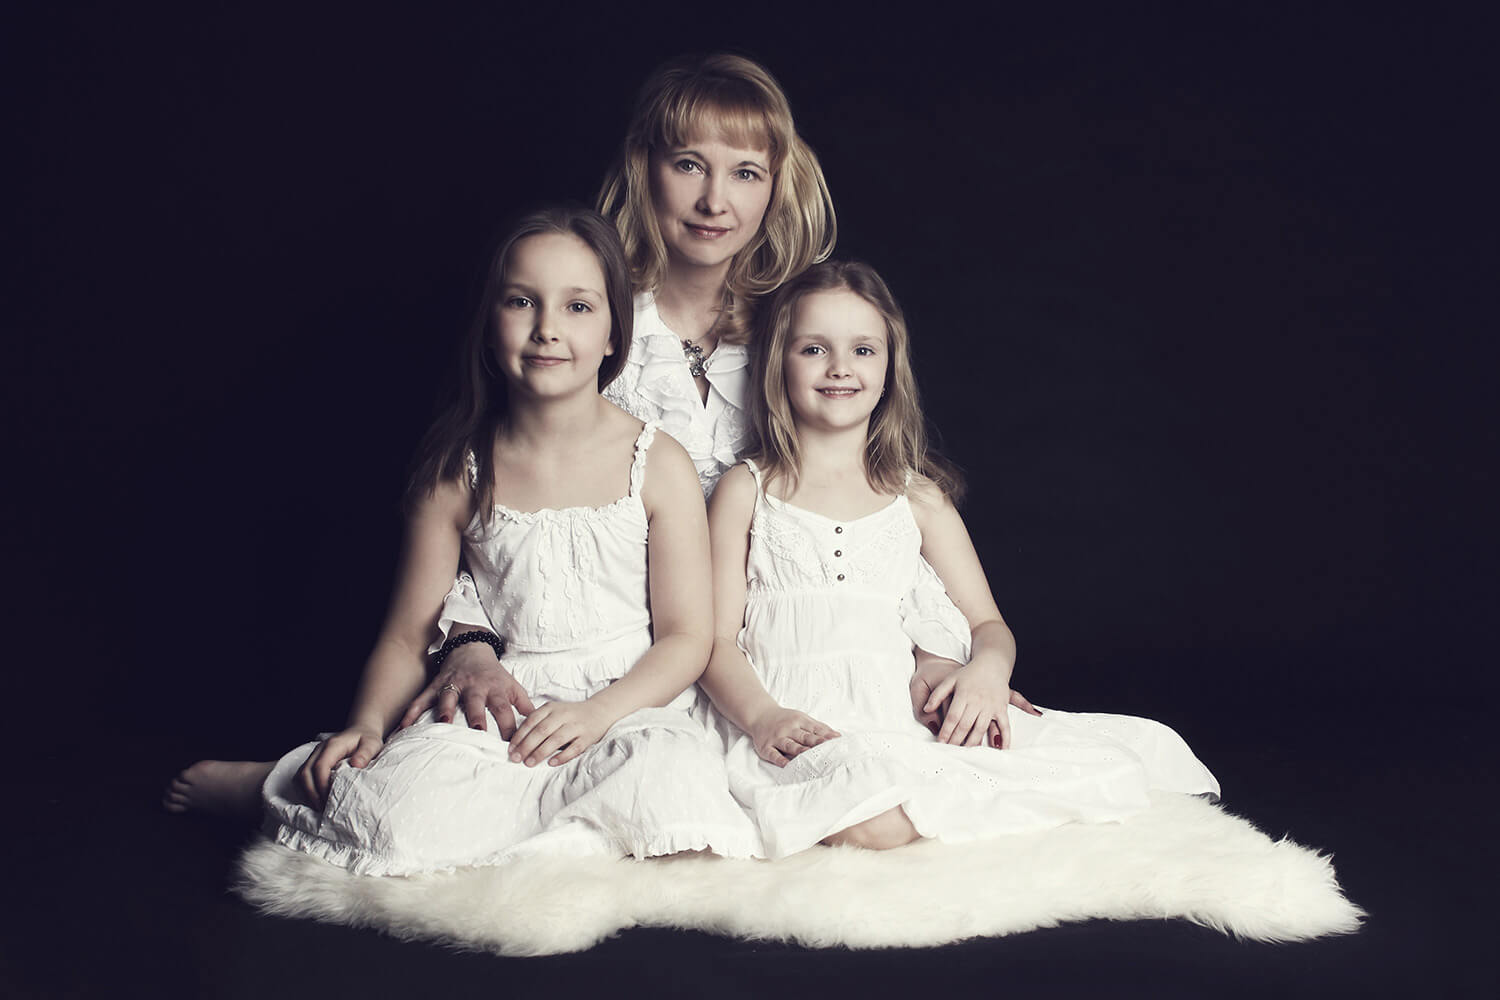 family photo of two sisters with their mom sitting on a white fur